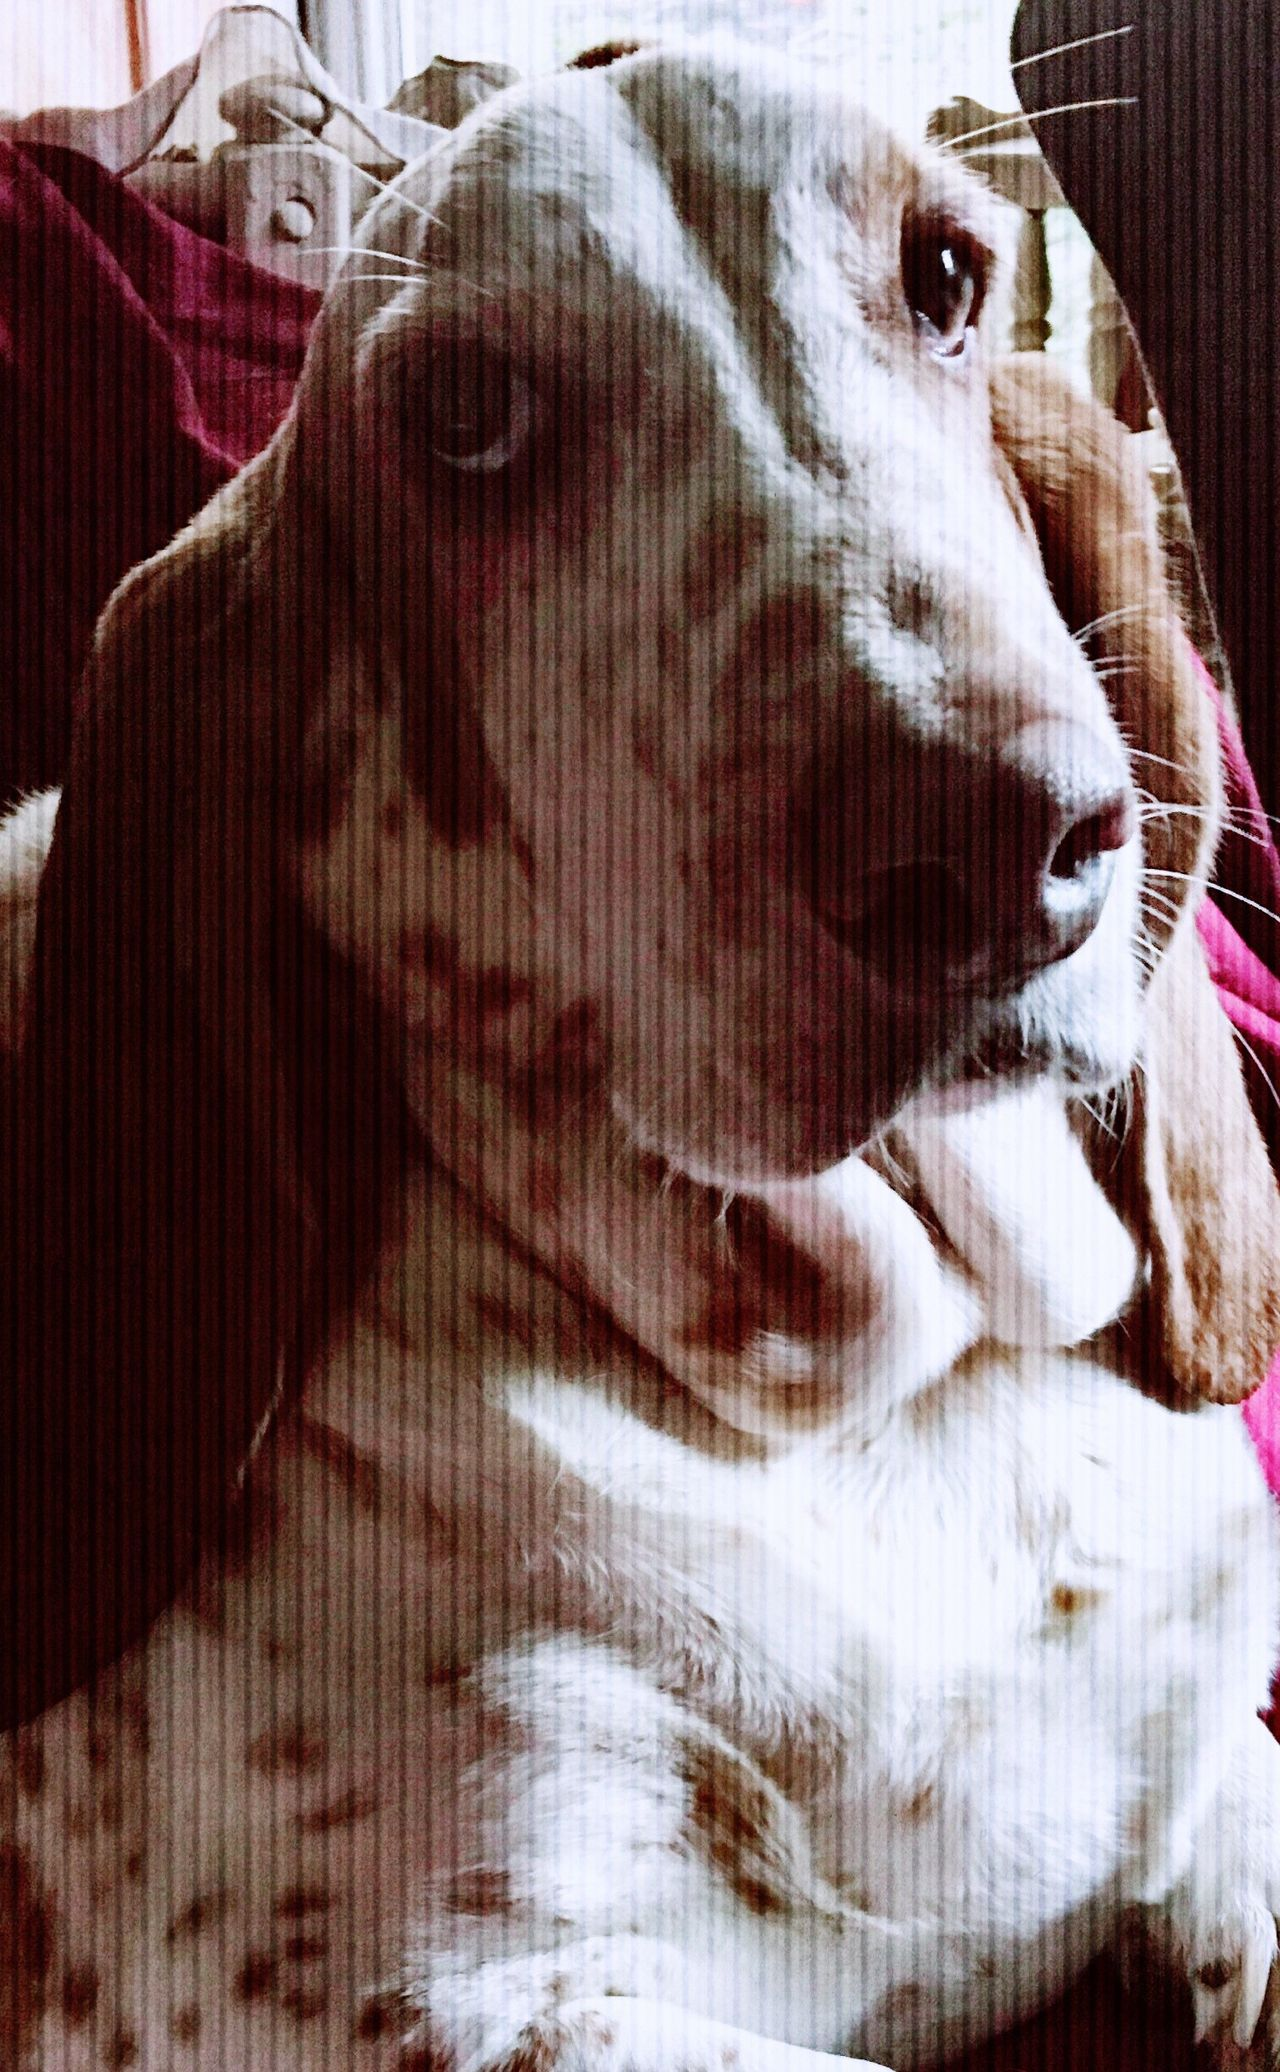 Are we going out yet? Close-up Indoors  No People Comfy And Cozy Poser ❤ Comfortable Looking At Camera Portrait Pampered Pets Snapwagdogs Sniffandbarkens Ilovemybassethound Iphonephotography Bassethound Moments Bassethoundadventures Bassethoundsare Best